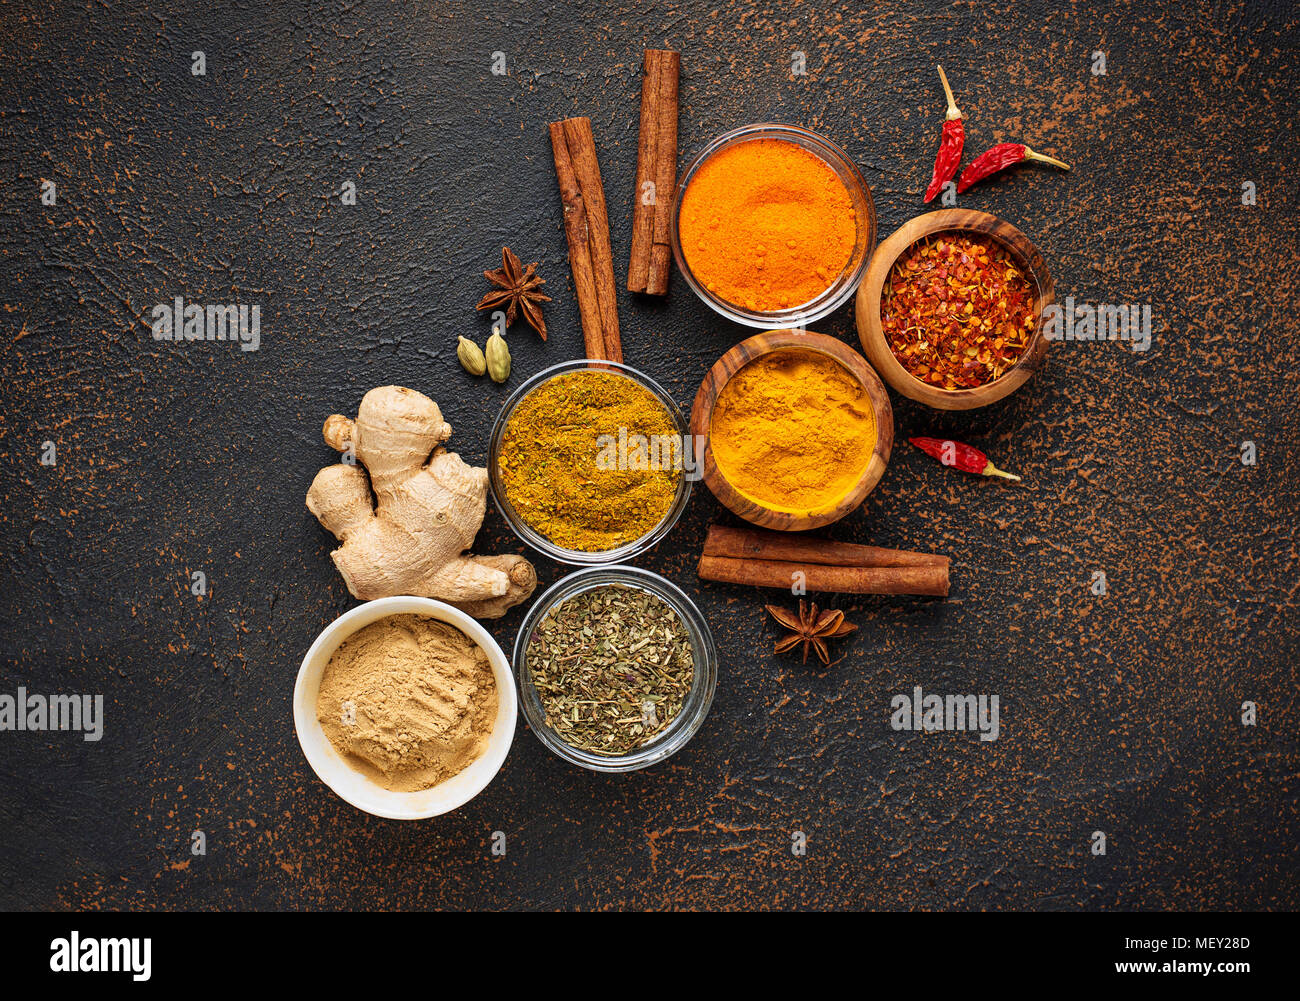 Indian Spices Stock Photos & Indian Spices Stock Images - Alamy